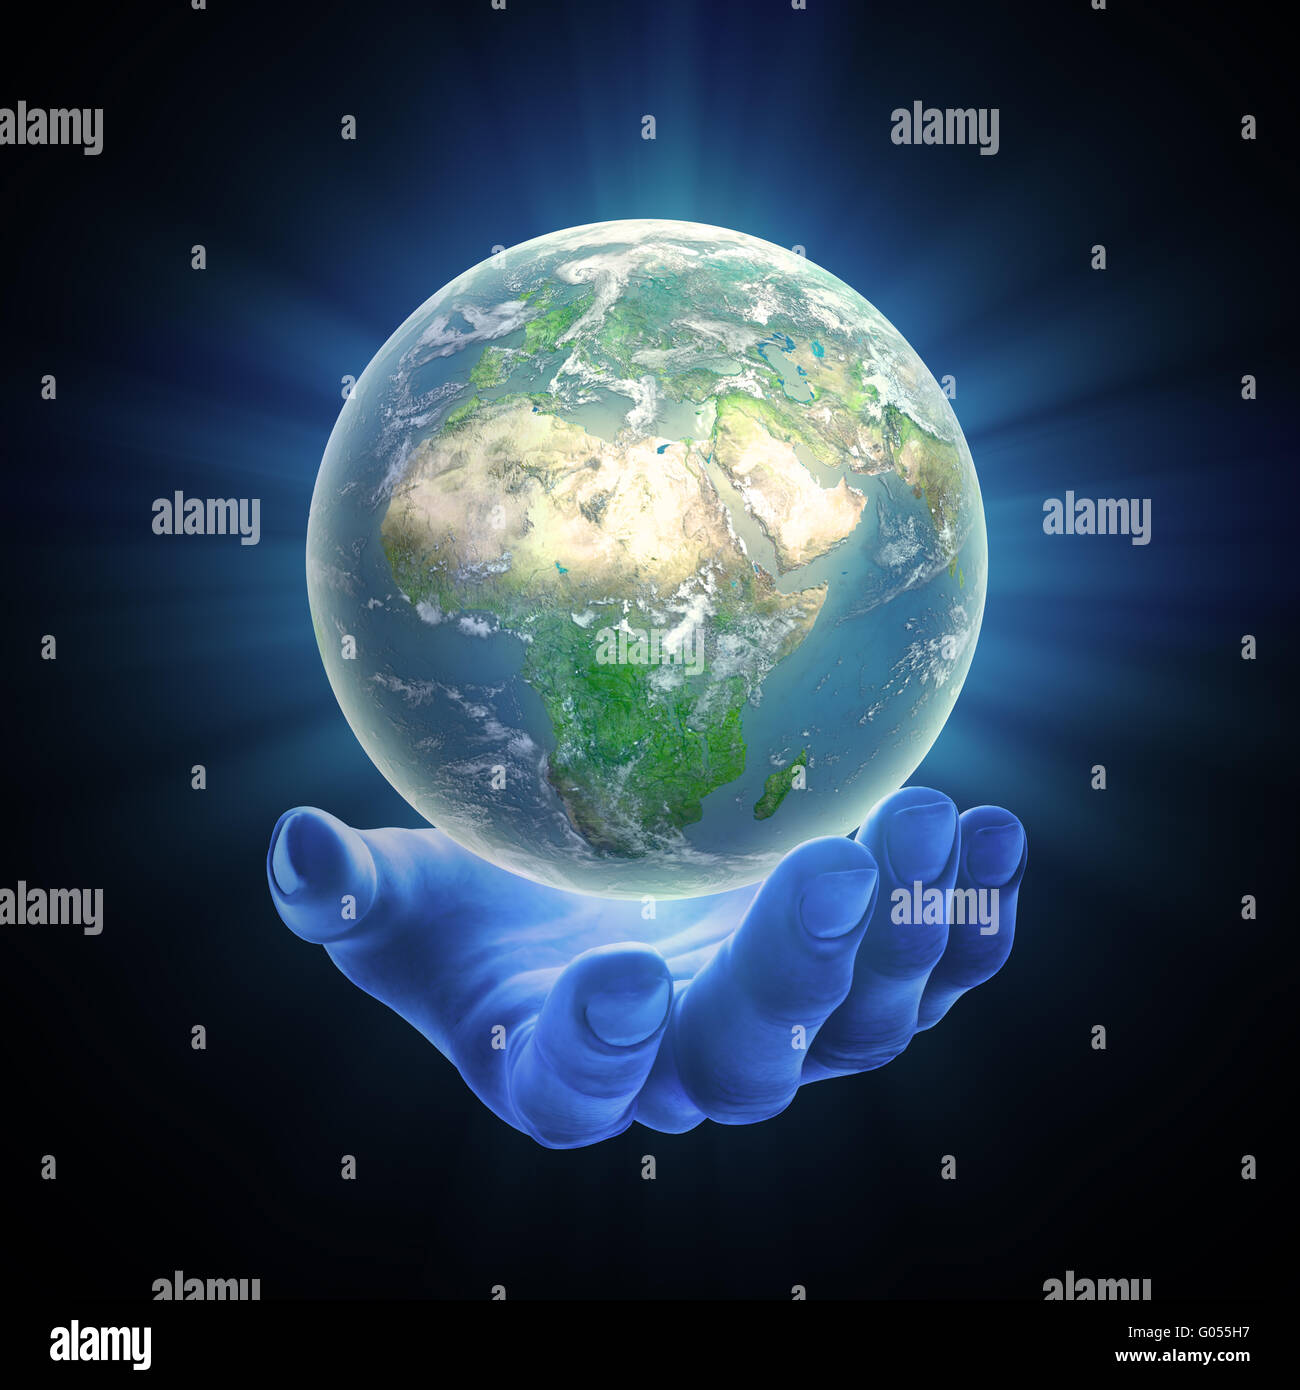 illustrated hand holding a glowing Earh globe - Stock Image